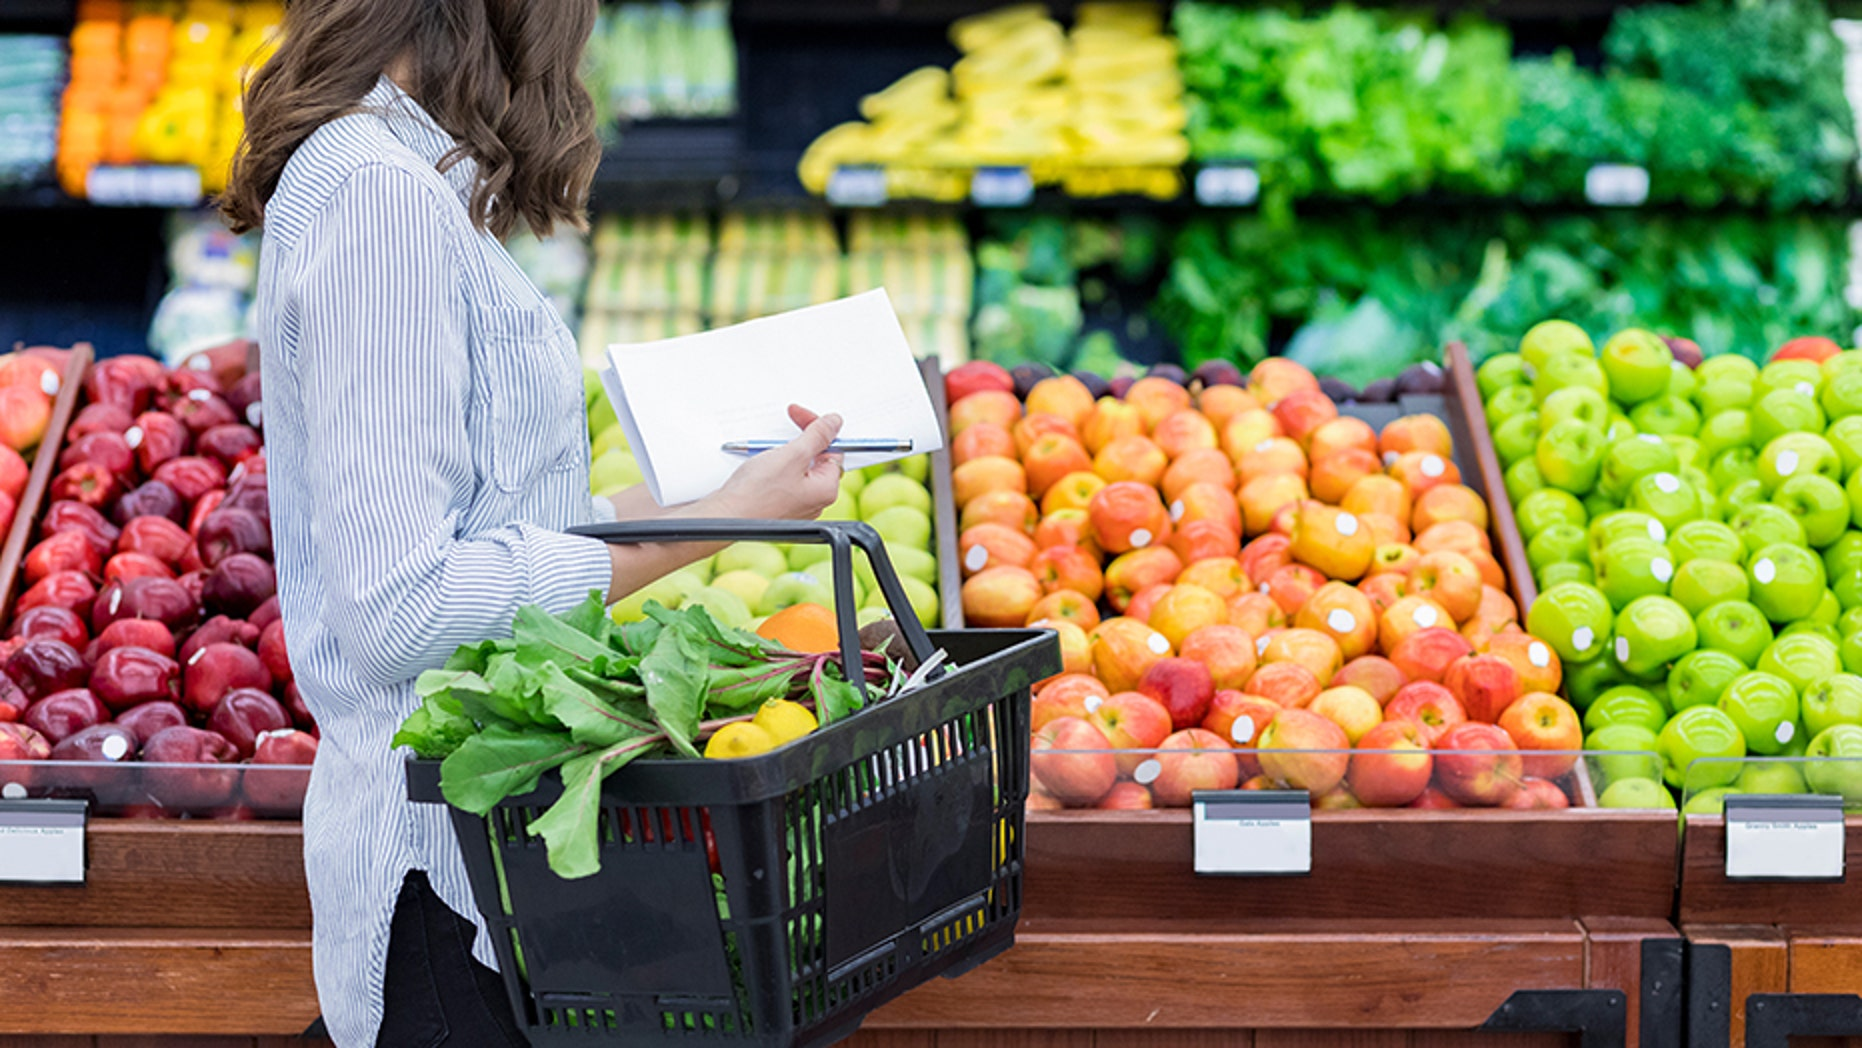 In a new study about food waste, researchers discovered that healthy people waste more food because they consume more fruits and vegetables.